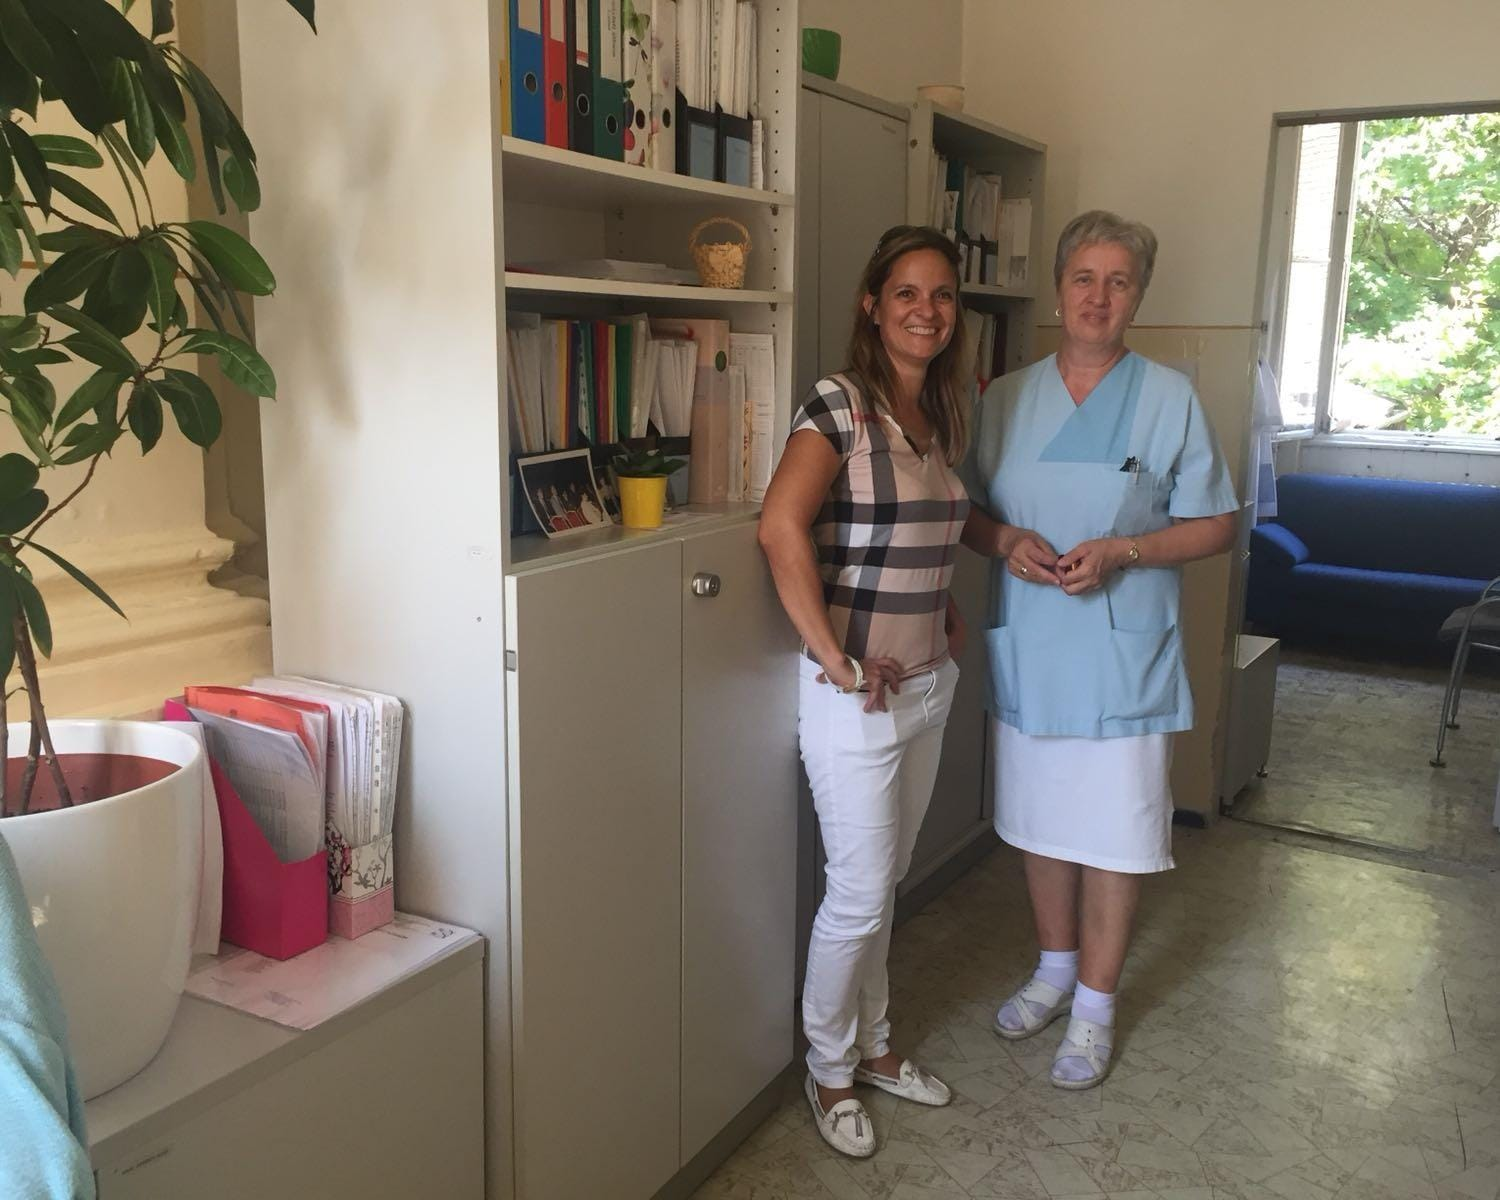 Orsolya Kasza from SAS Hungary presenting a donation to Children's hospital in Budapest